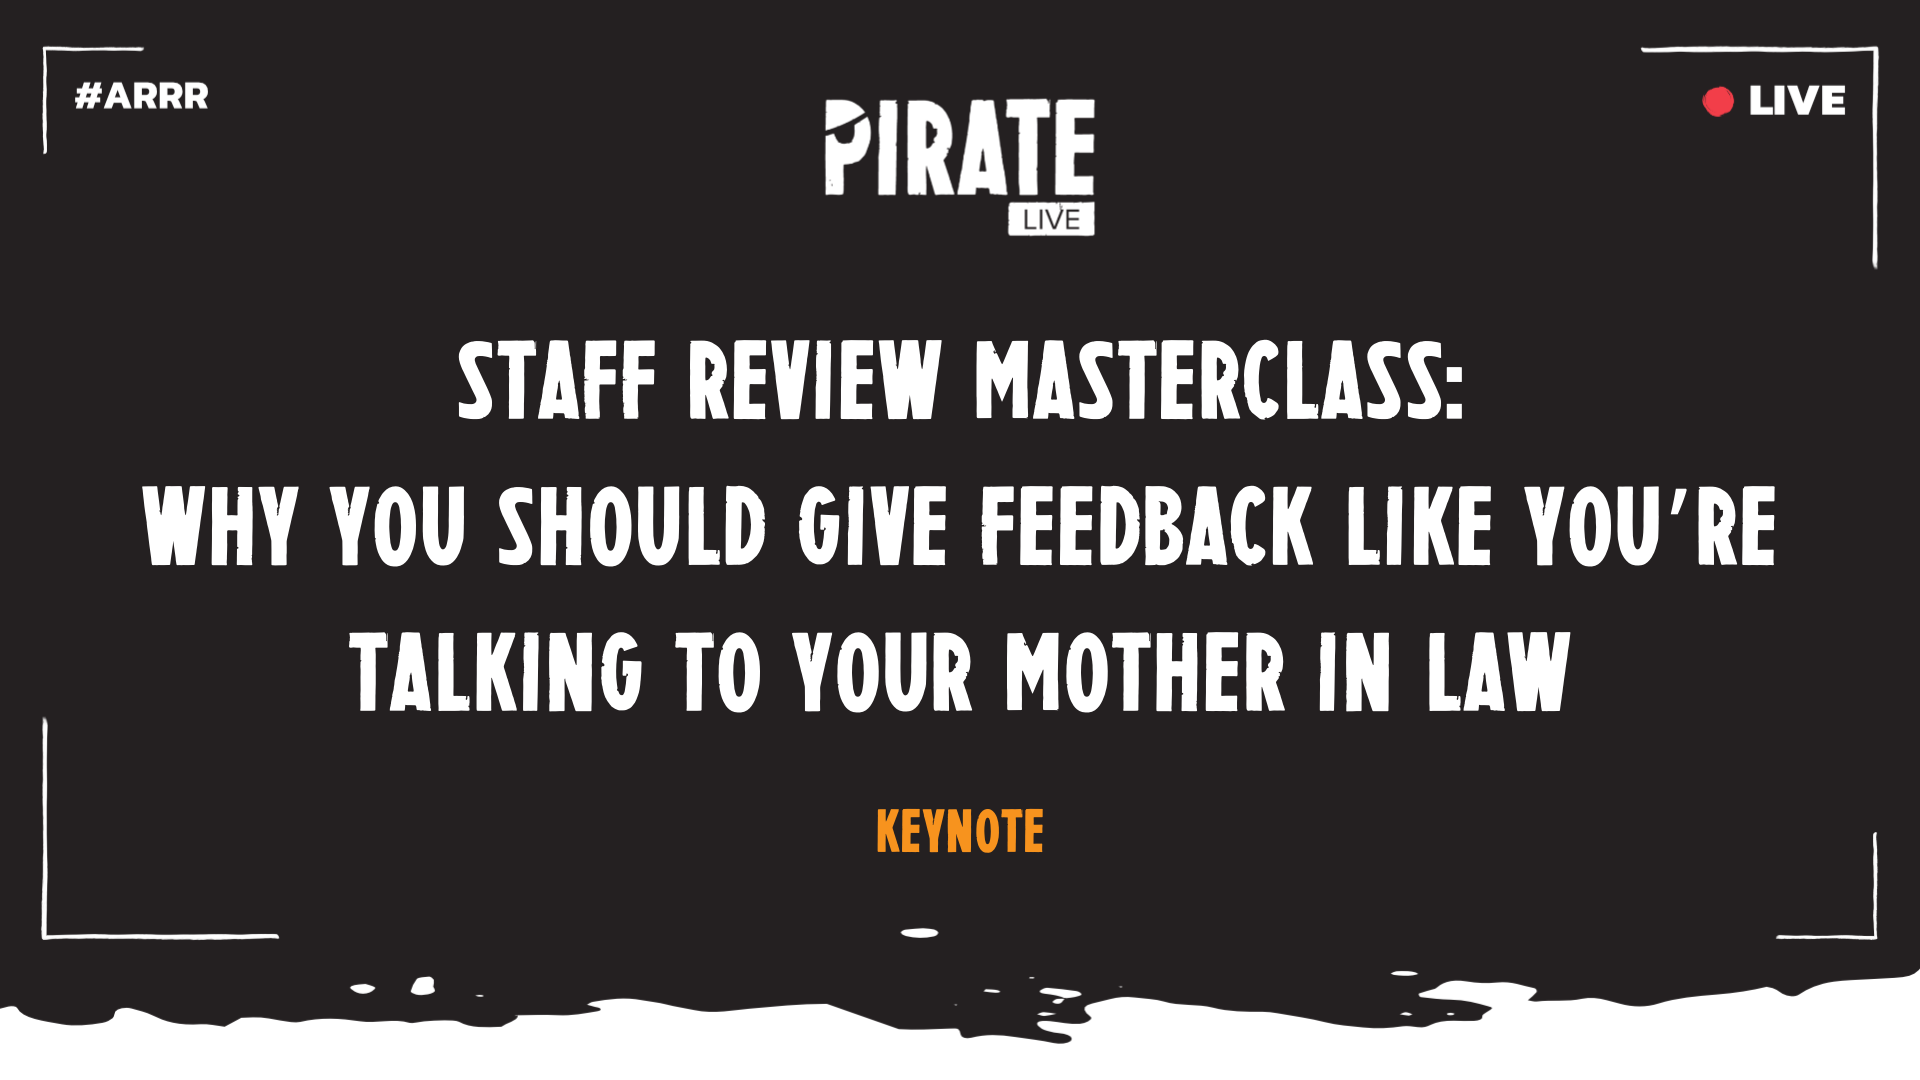 Why you should give feedback like you're talking to your mother in law